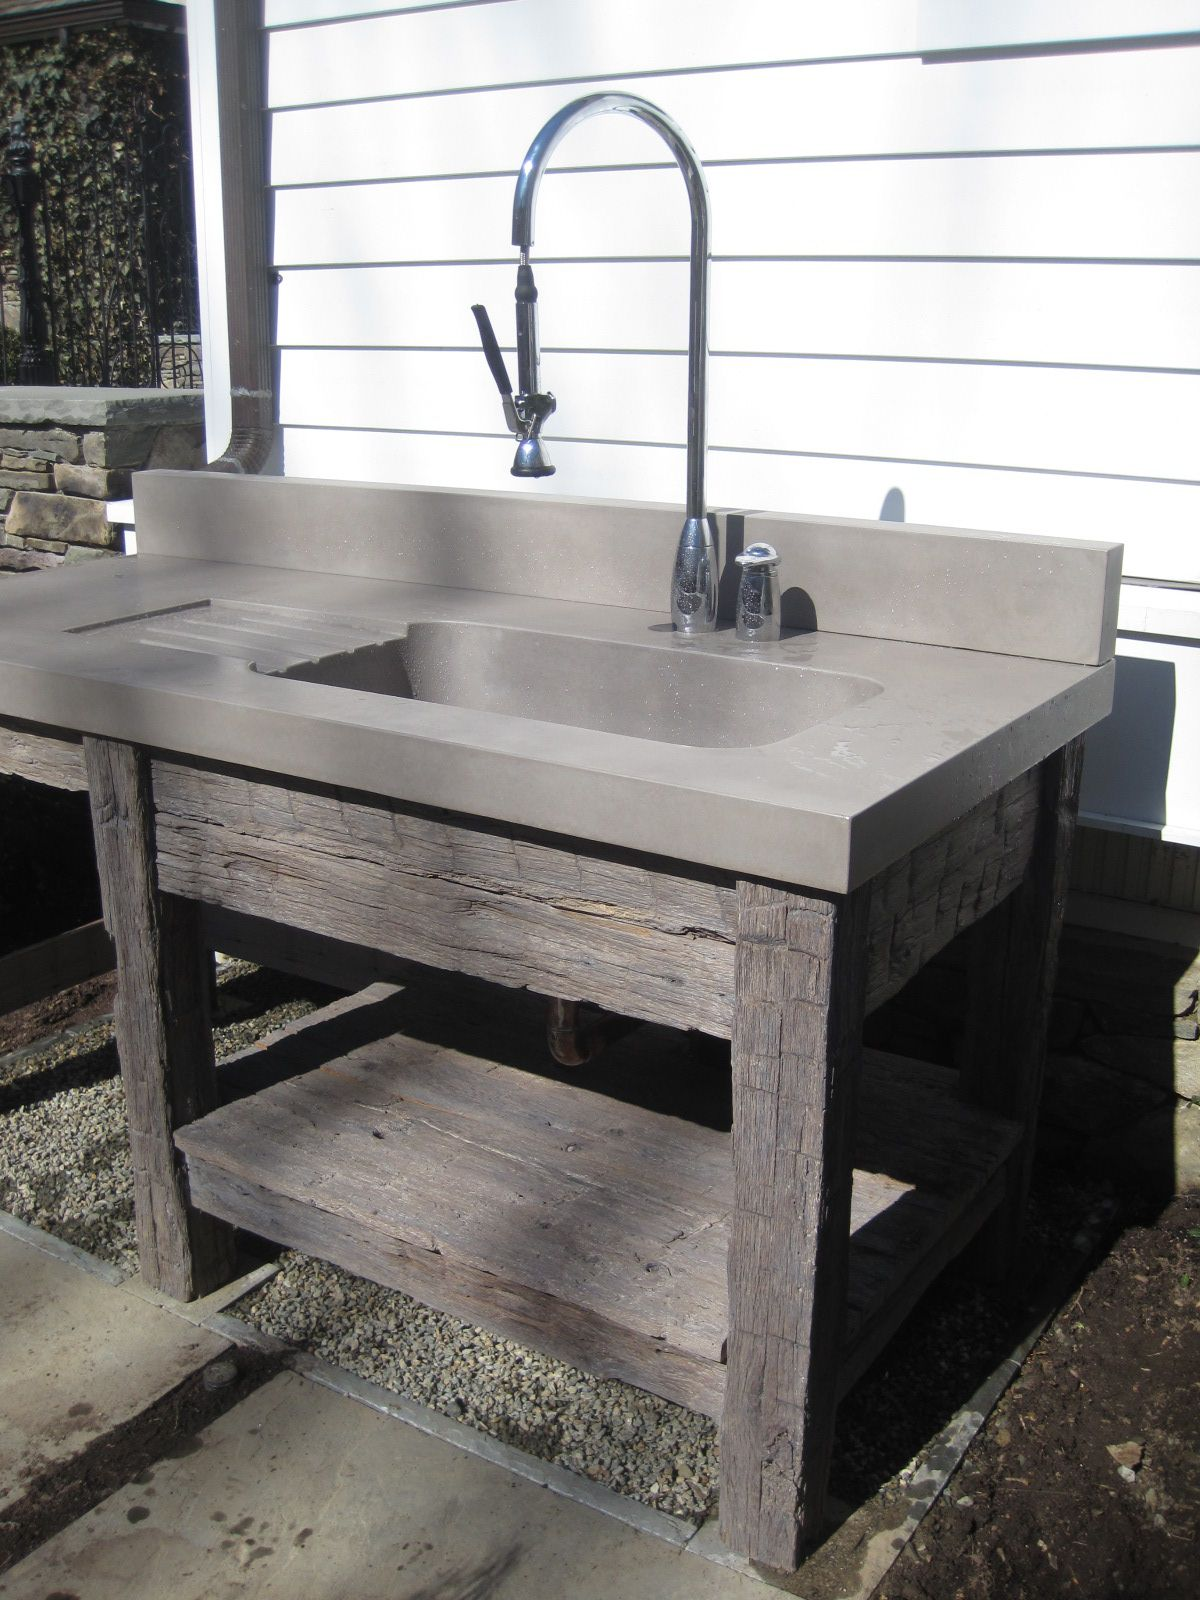 Reclaimed Wood Vanity Base And Concrete Bathroom Sink By Trueform Concrete Trueformconcrete Oursinks Concrete Sink Outdoor Kitchen Concrete Bathroom